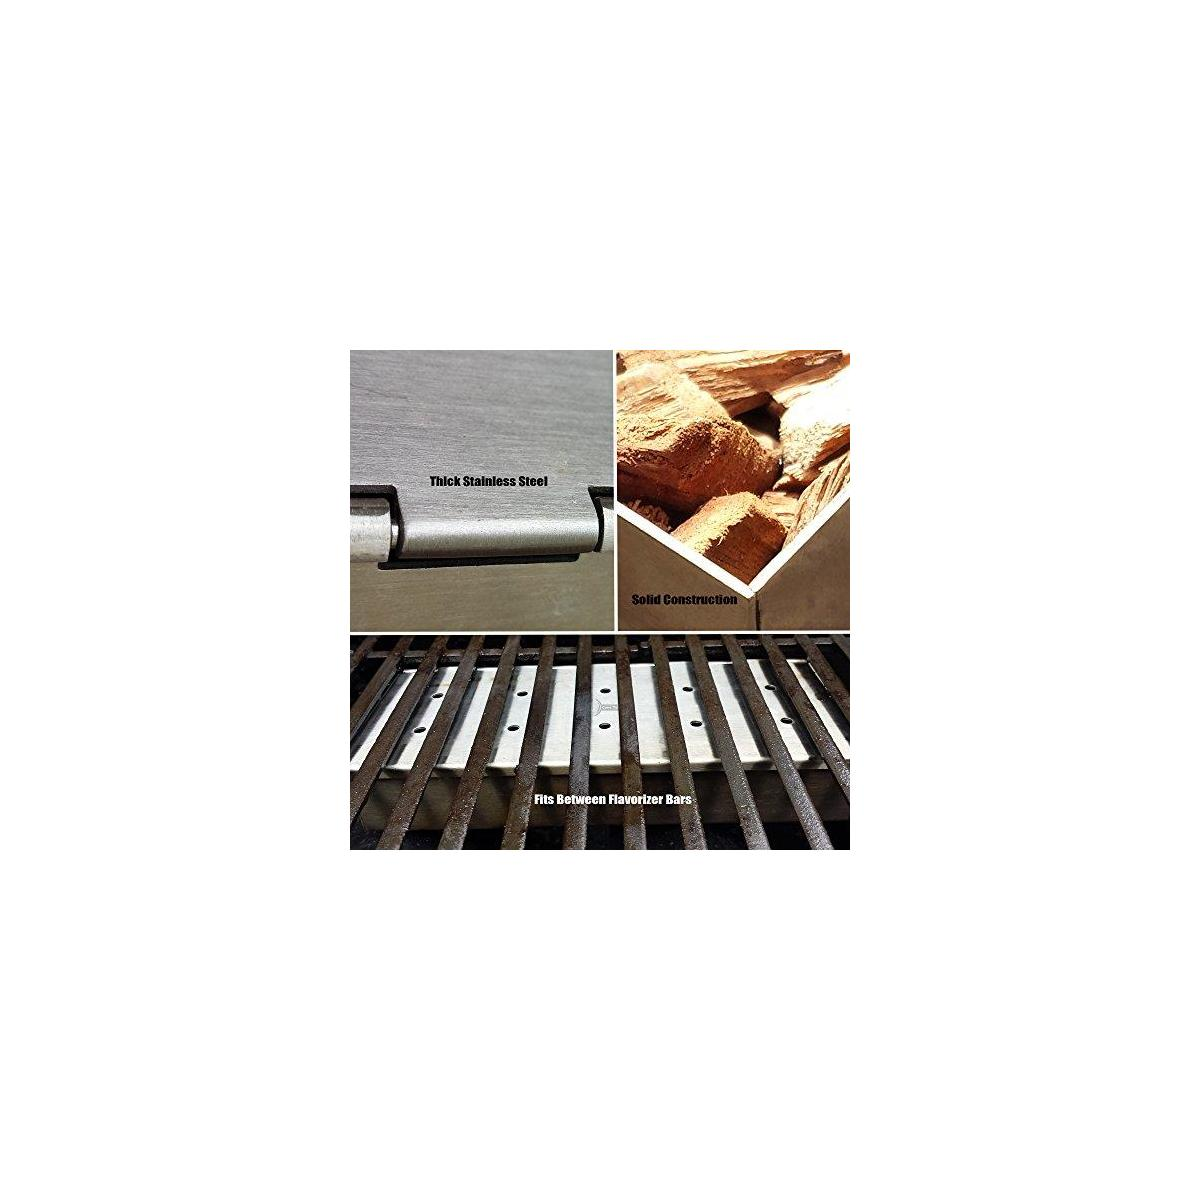 Grill Tools Set + Smoker Box for BBQ Grill Wood Chip - 25% Thicker Stainless Steel Won't Warp - Charcoal & Gas Barbecue Meat Smoking with Hinged Lid - Best Grilling Accessories Gift for Dad